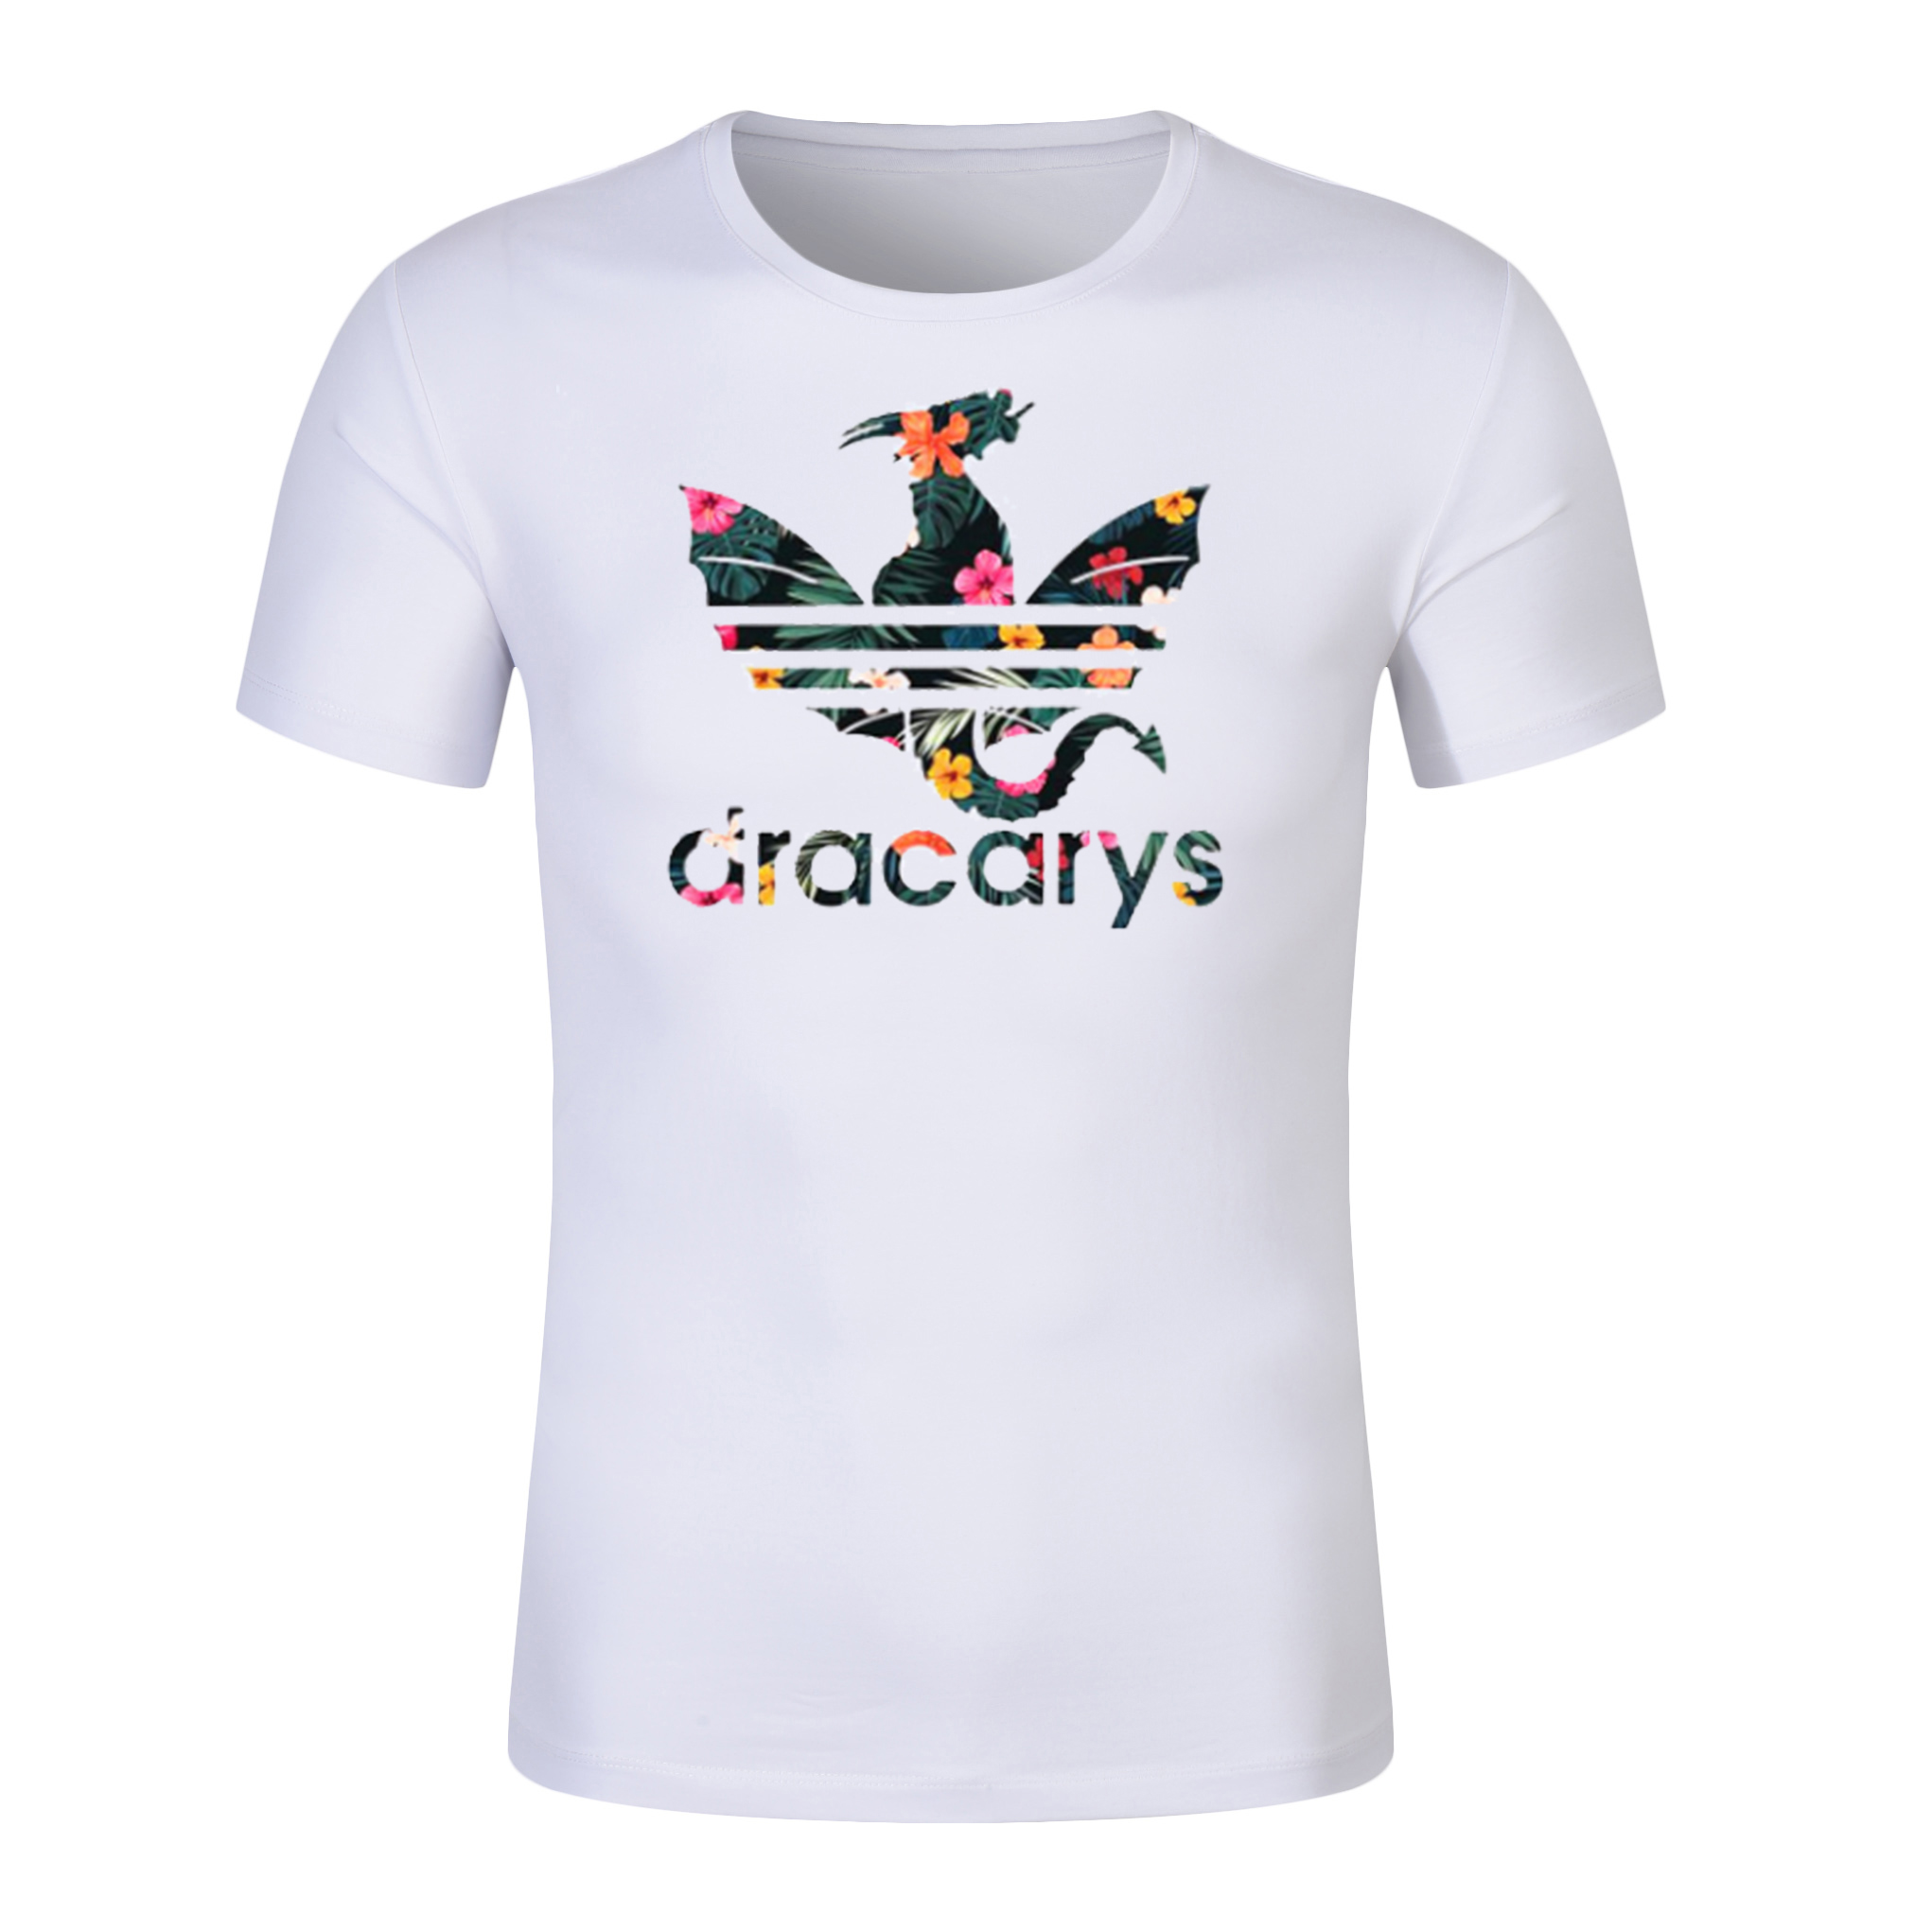 Dracarys Tshirt Game Of Thrones Brand Unisex T Shirt harajuku Vintage Tshirts Camisetas hombre Tees Men And Women shirt Tops in T Shirts from Women 39 s Clothing